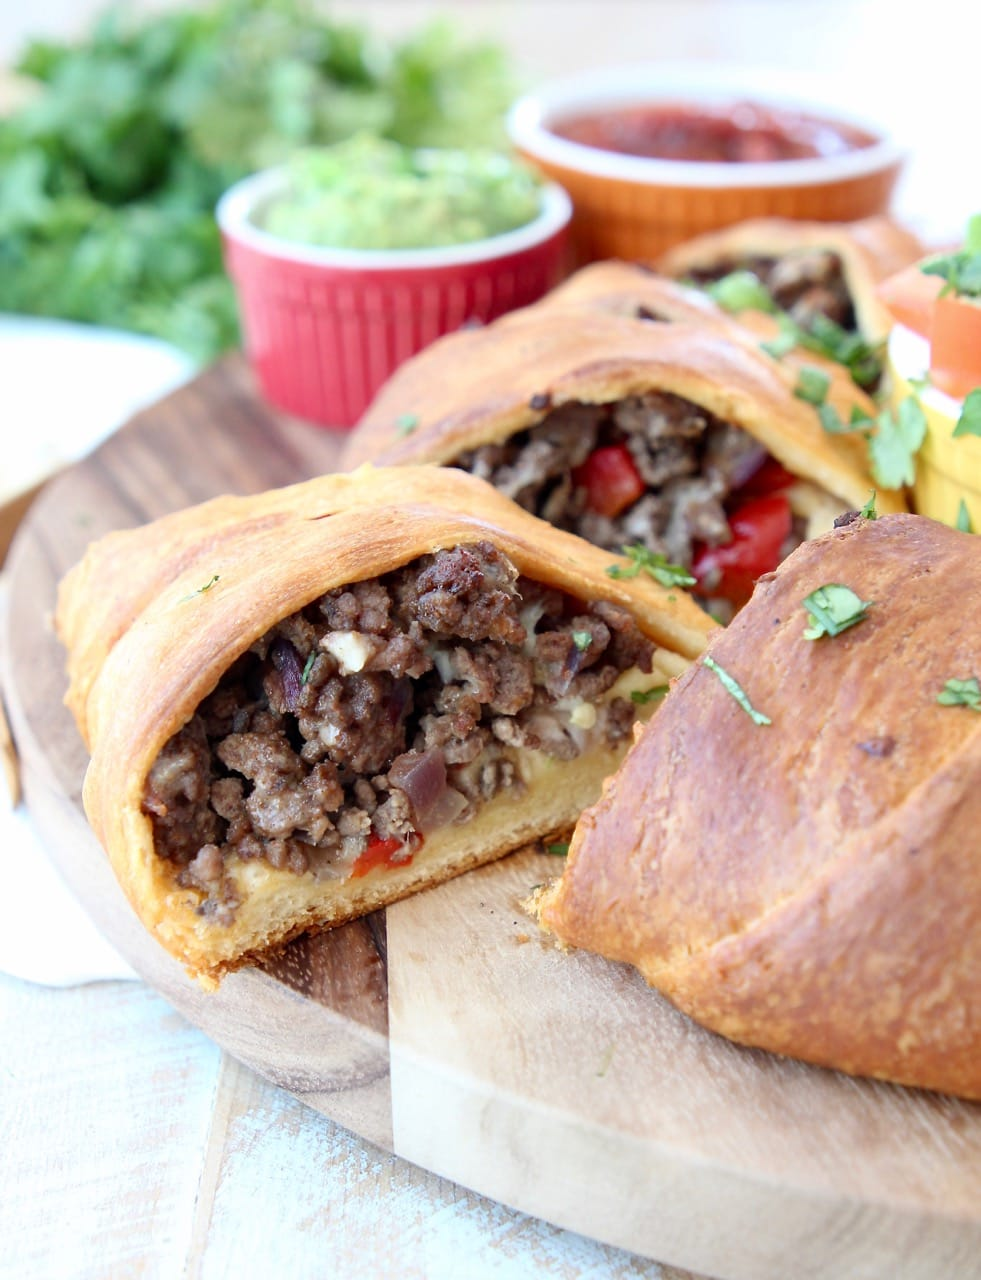 Taco ring with crescent rolls filled with ground beef, onions and peppers on wood cutting board with piece sliced out